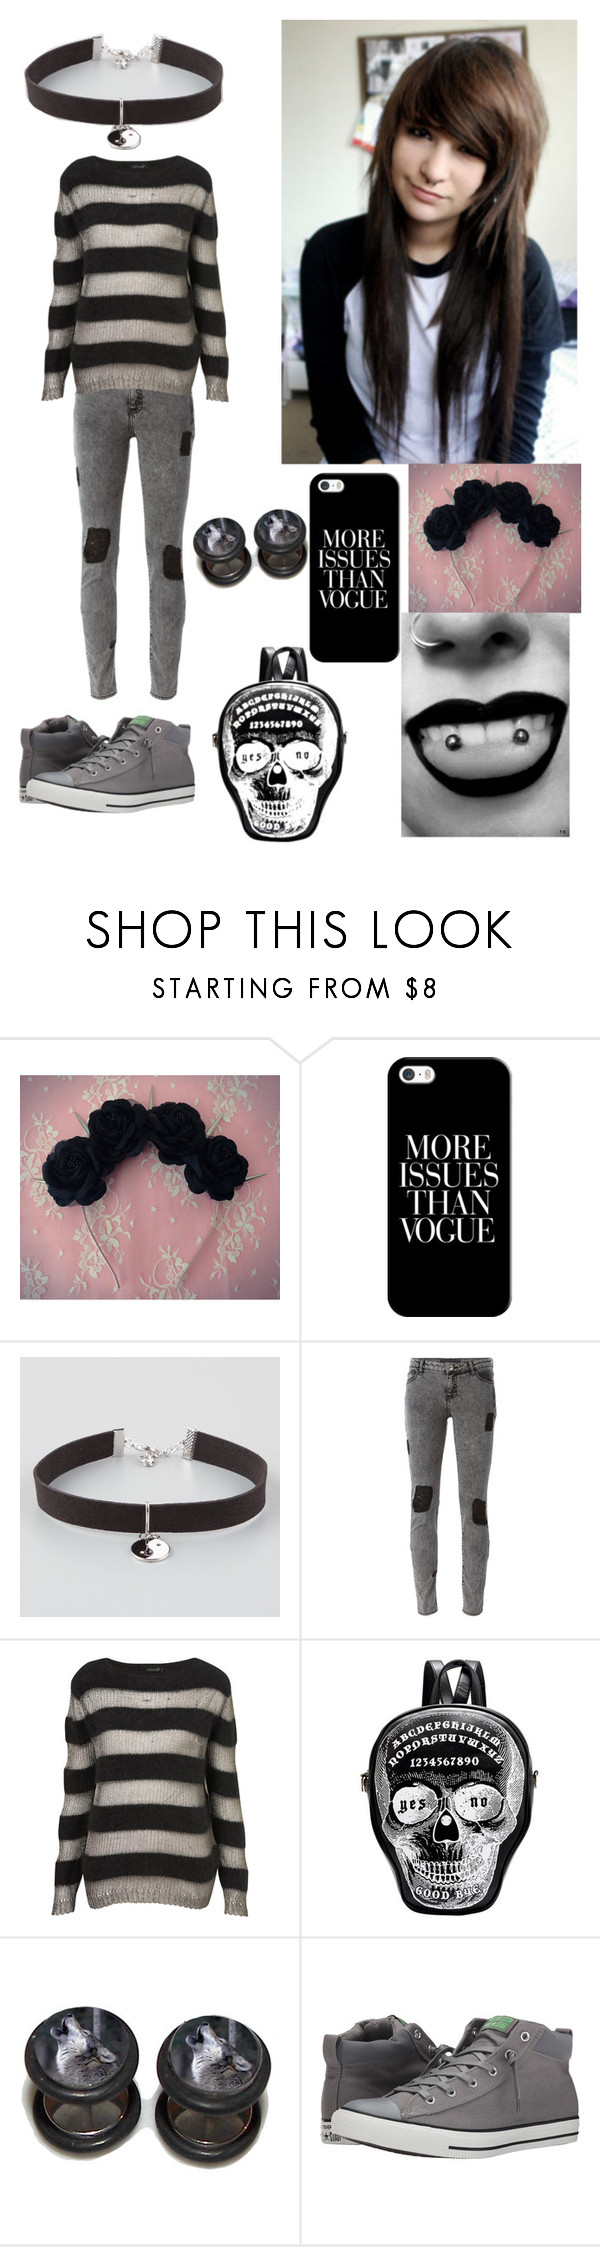 """Untitled #52"" by bringmetheveil ❤ liked on Polyvore featuring ...Lost, Casetify, Full Tilt, Each X Other, Topshop and Converse"